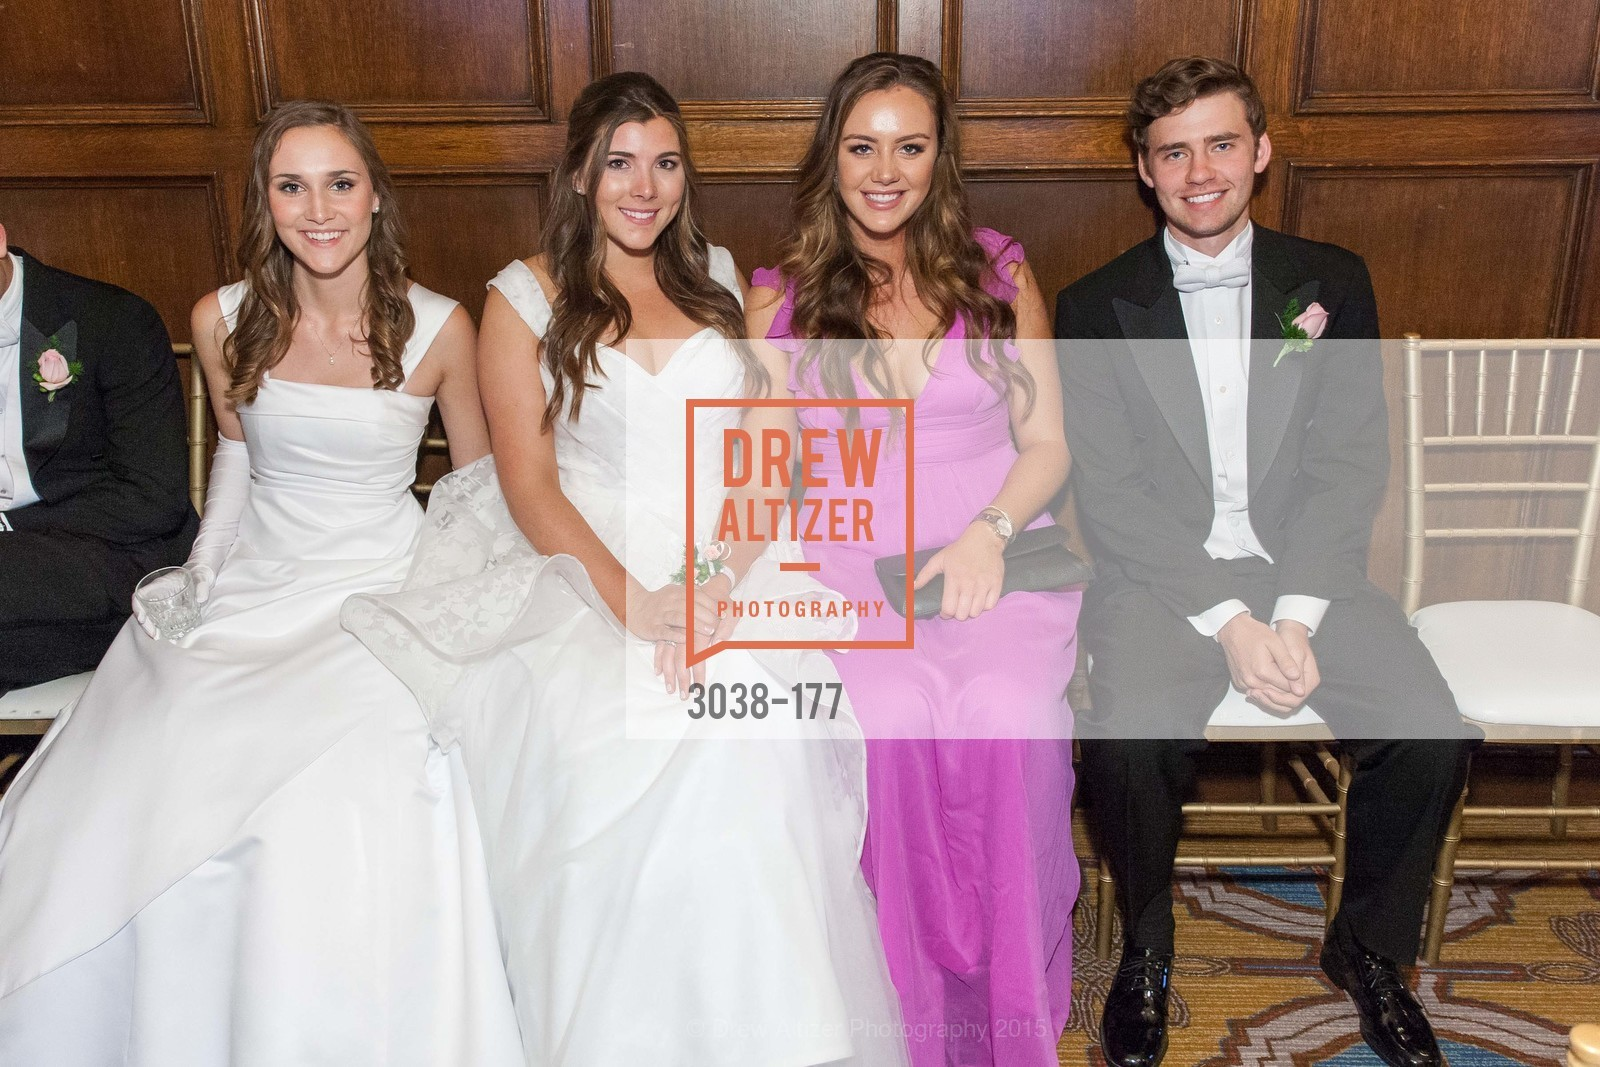 Connolly Grace Steigerwald, Diana Laura Silvestri, Claire Healy, Brendan William Dunlap, The 2015 San Francisco Debutante Ball, The Westin St. Francis San Francisco Union Square. 335 Powell St, June 20th, 2015,Drew Altizer, Drew Altizer Photography, full-service agency, private events, San Francisco photographer, photographer california